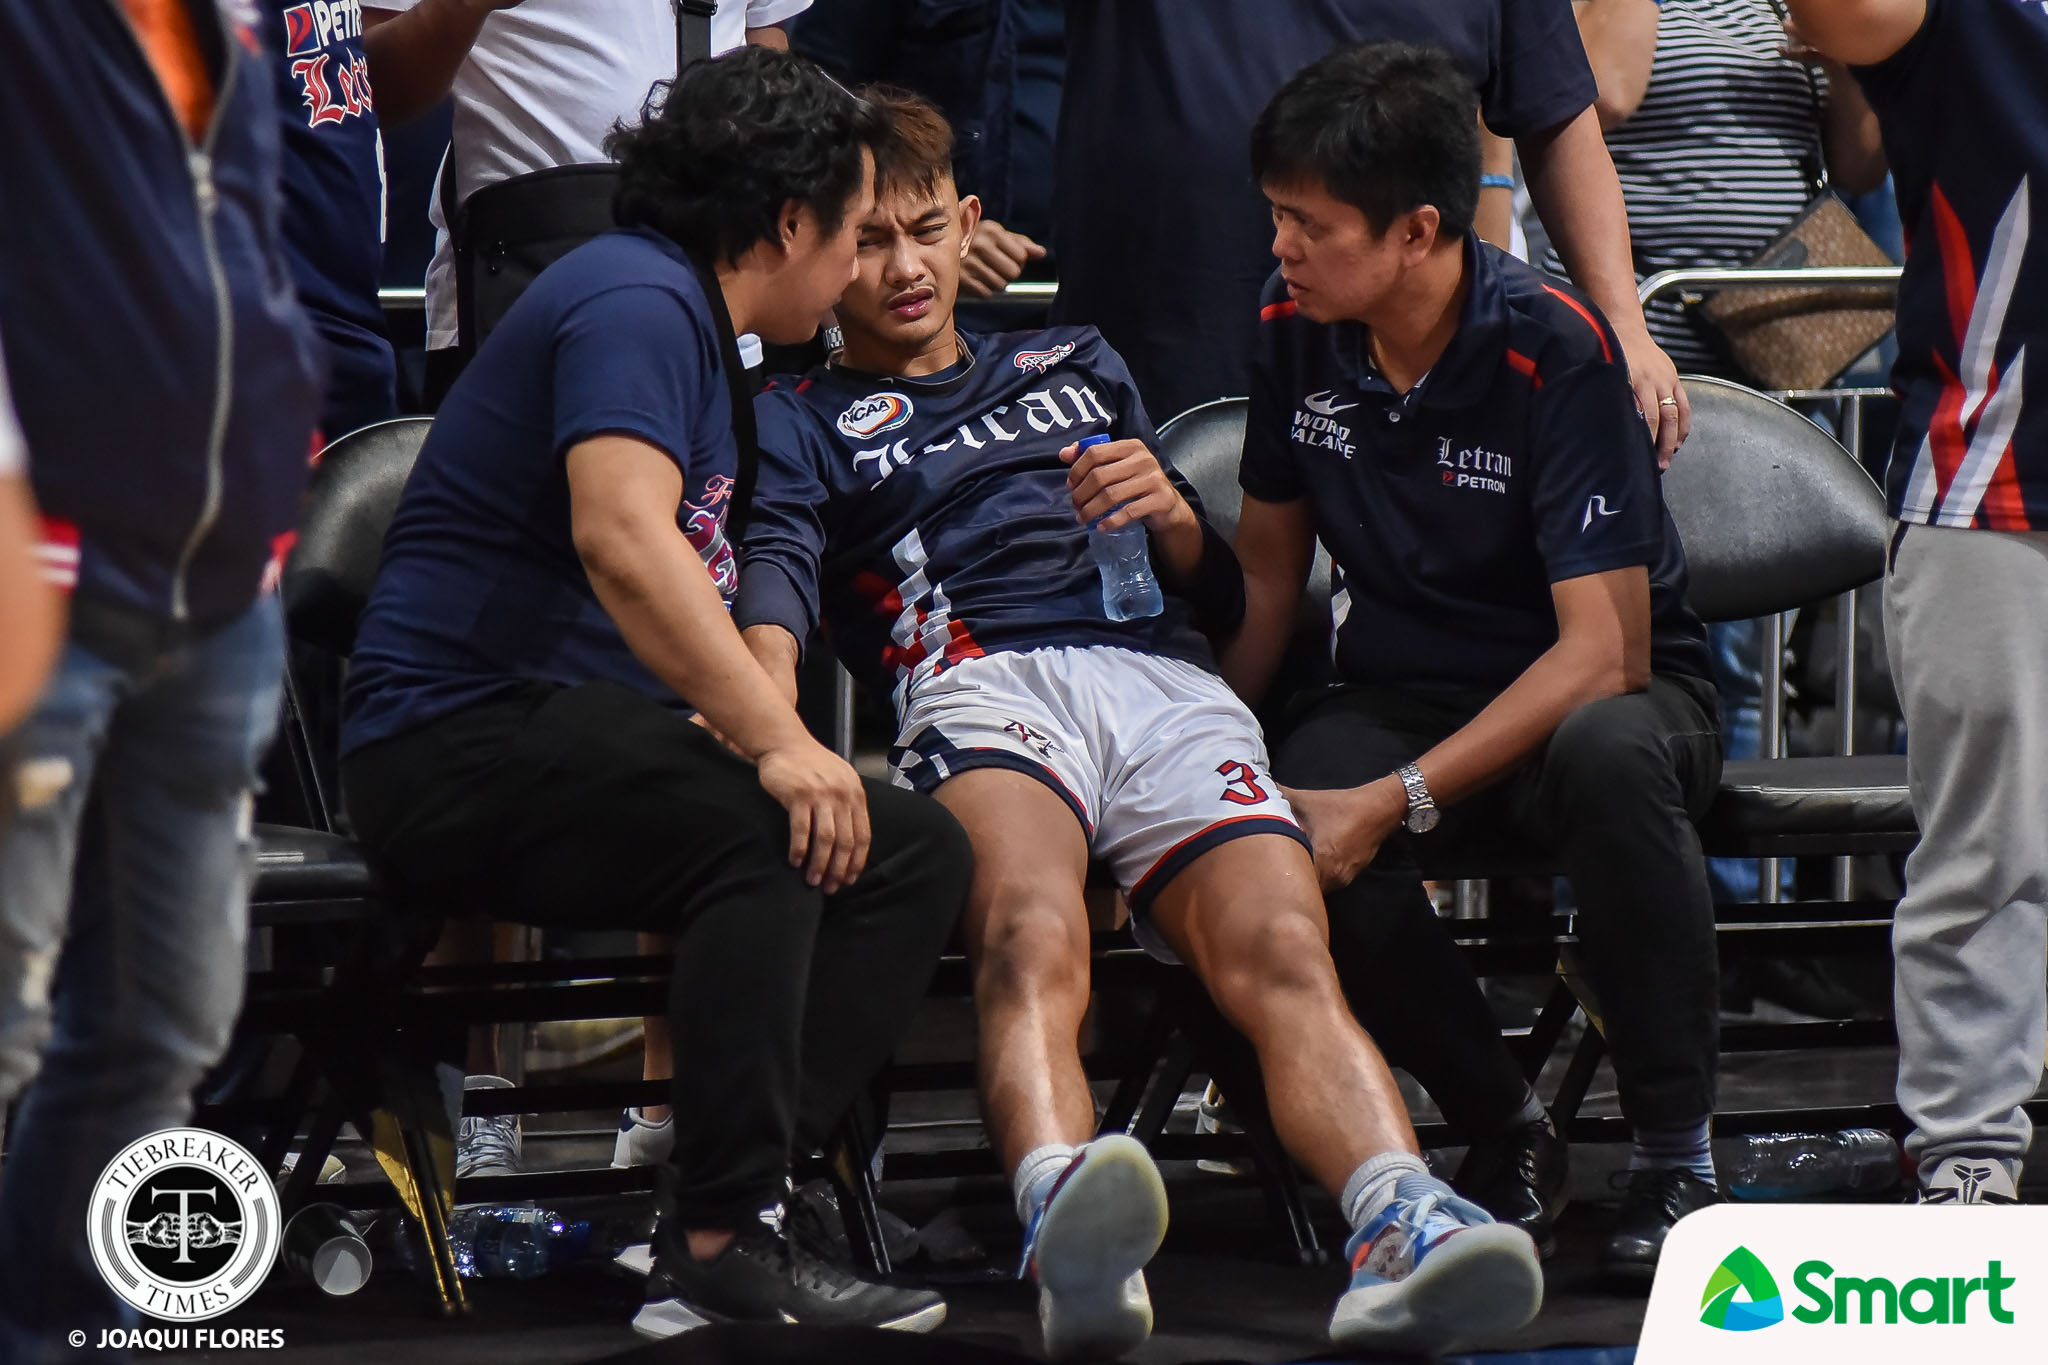 Tiebreaker Times Fran Yu laments not being there for Letran late Basketball CSJL NCAA News  NCAA Season 95 Seniors Basketball NCAA Season 95 Letran Seniors Basketball Fran Yu